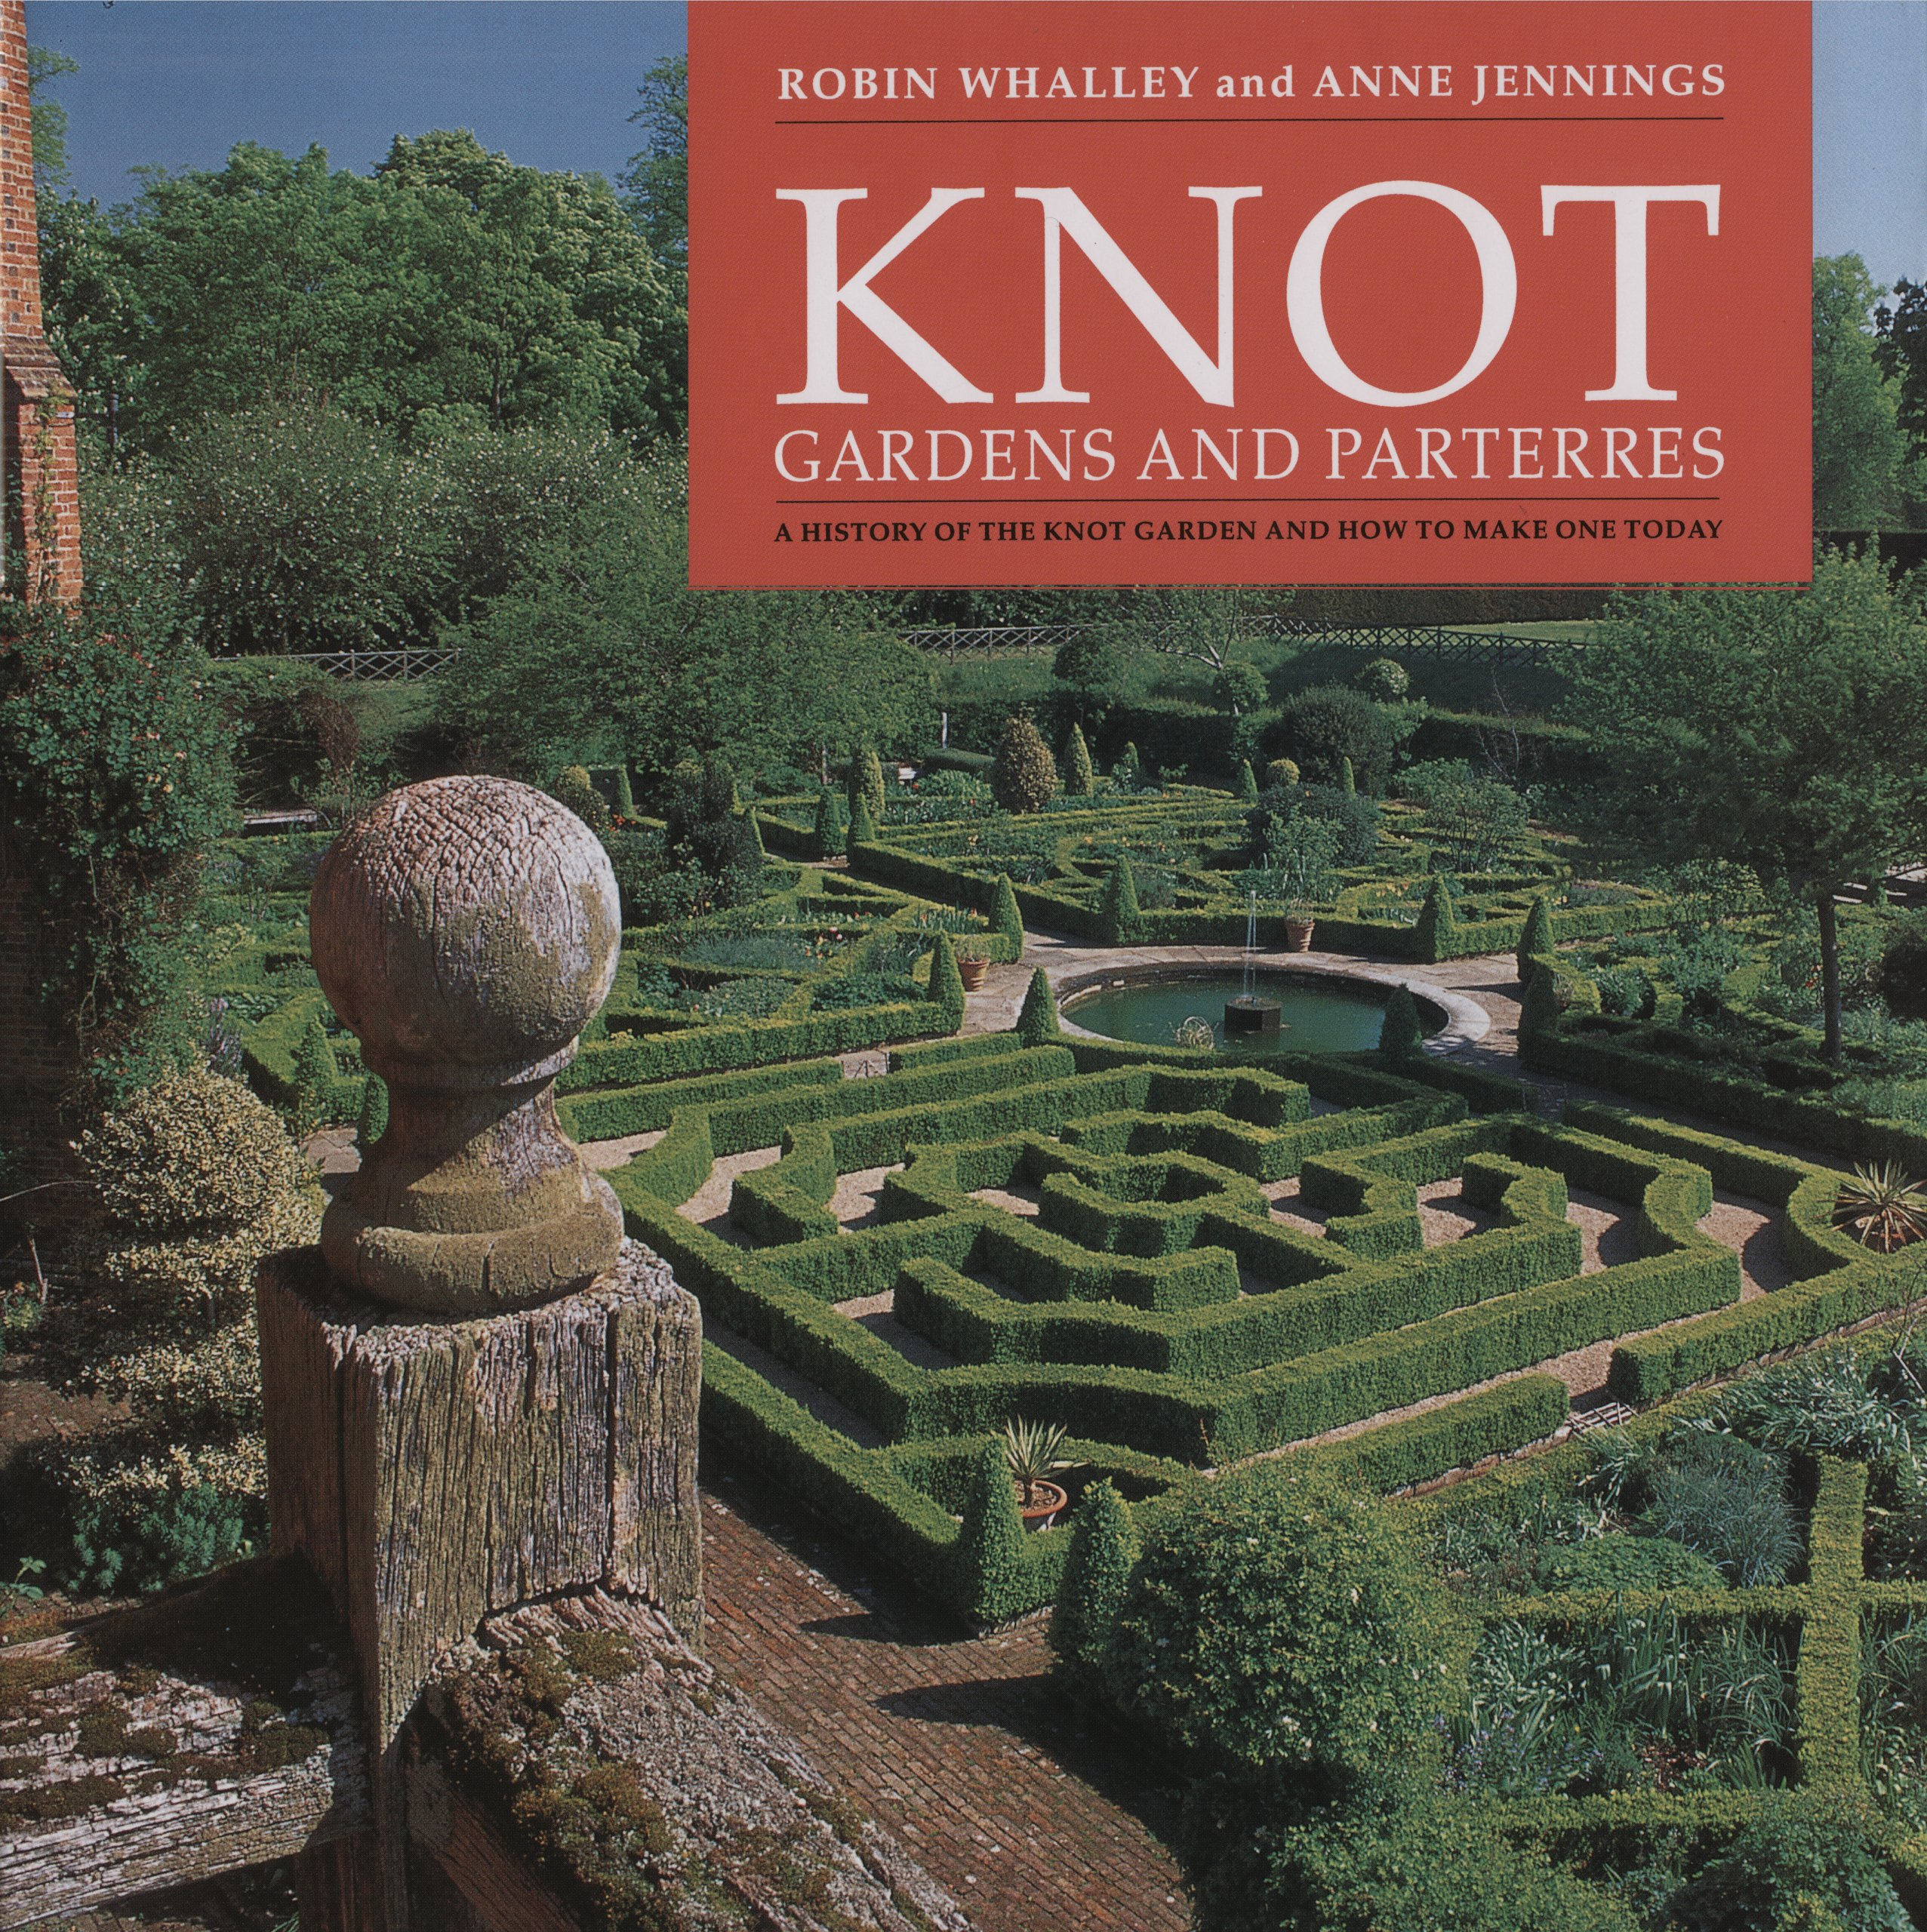 knot gardens and parterres hardcover 2007 robin whalley